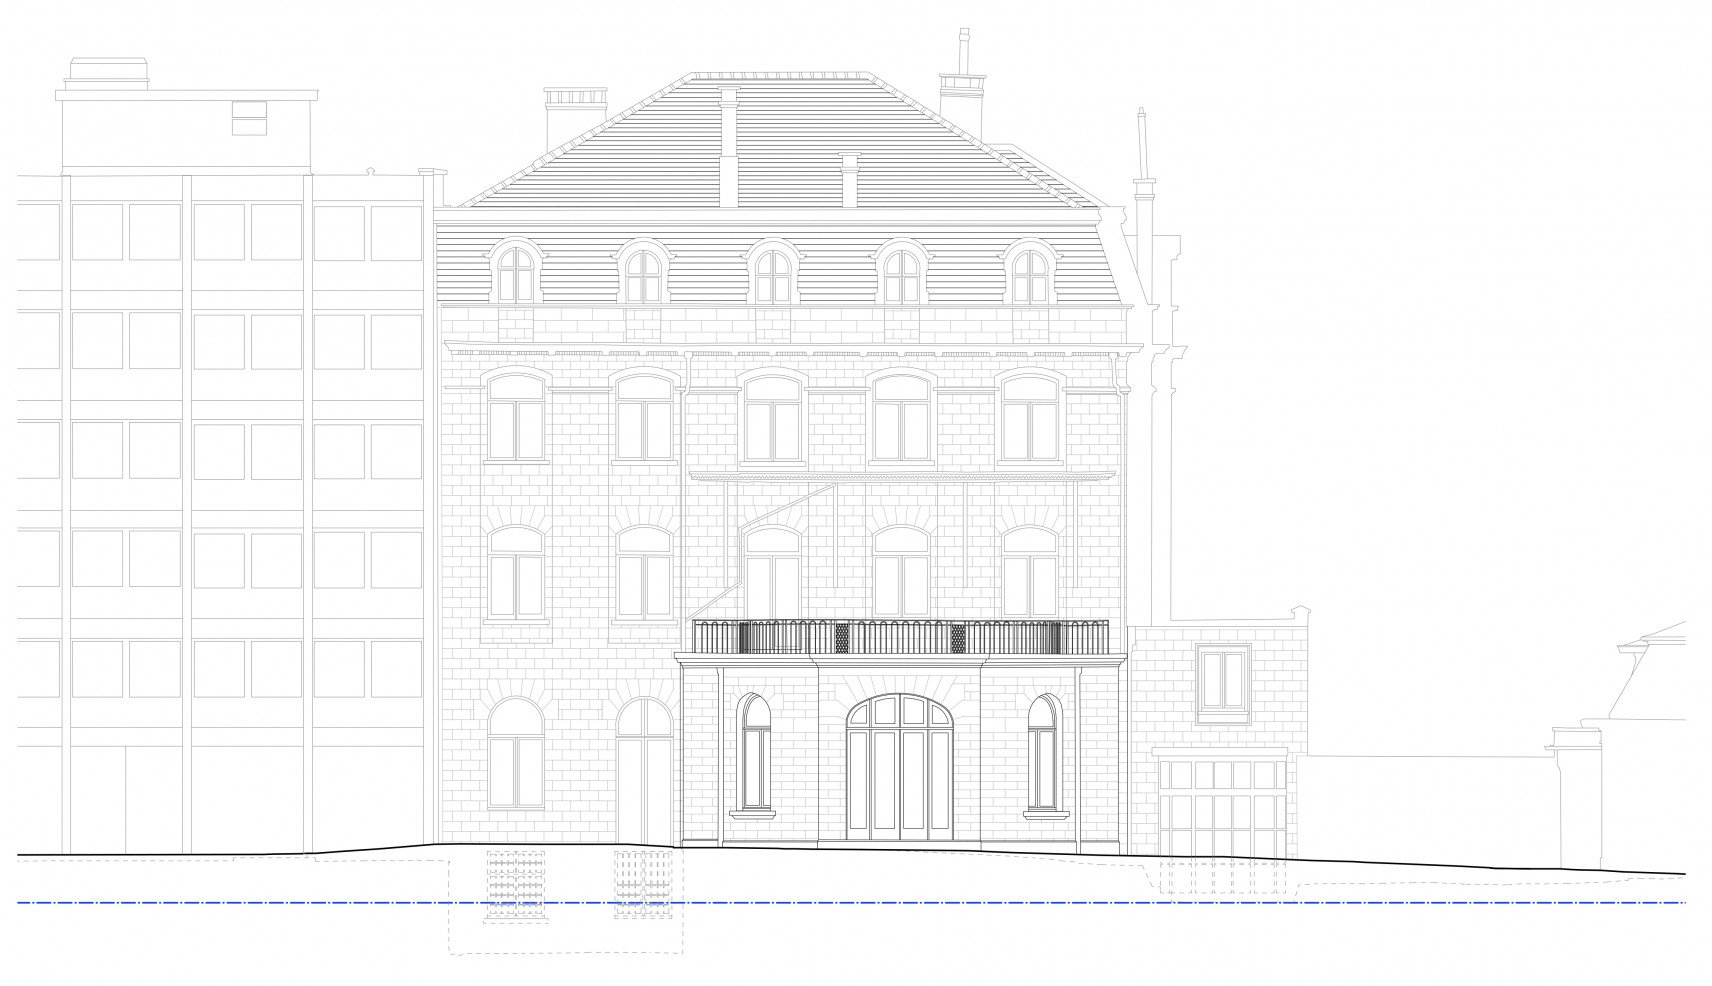 The Mérode, Elsene | 2D drawings back facade